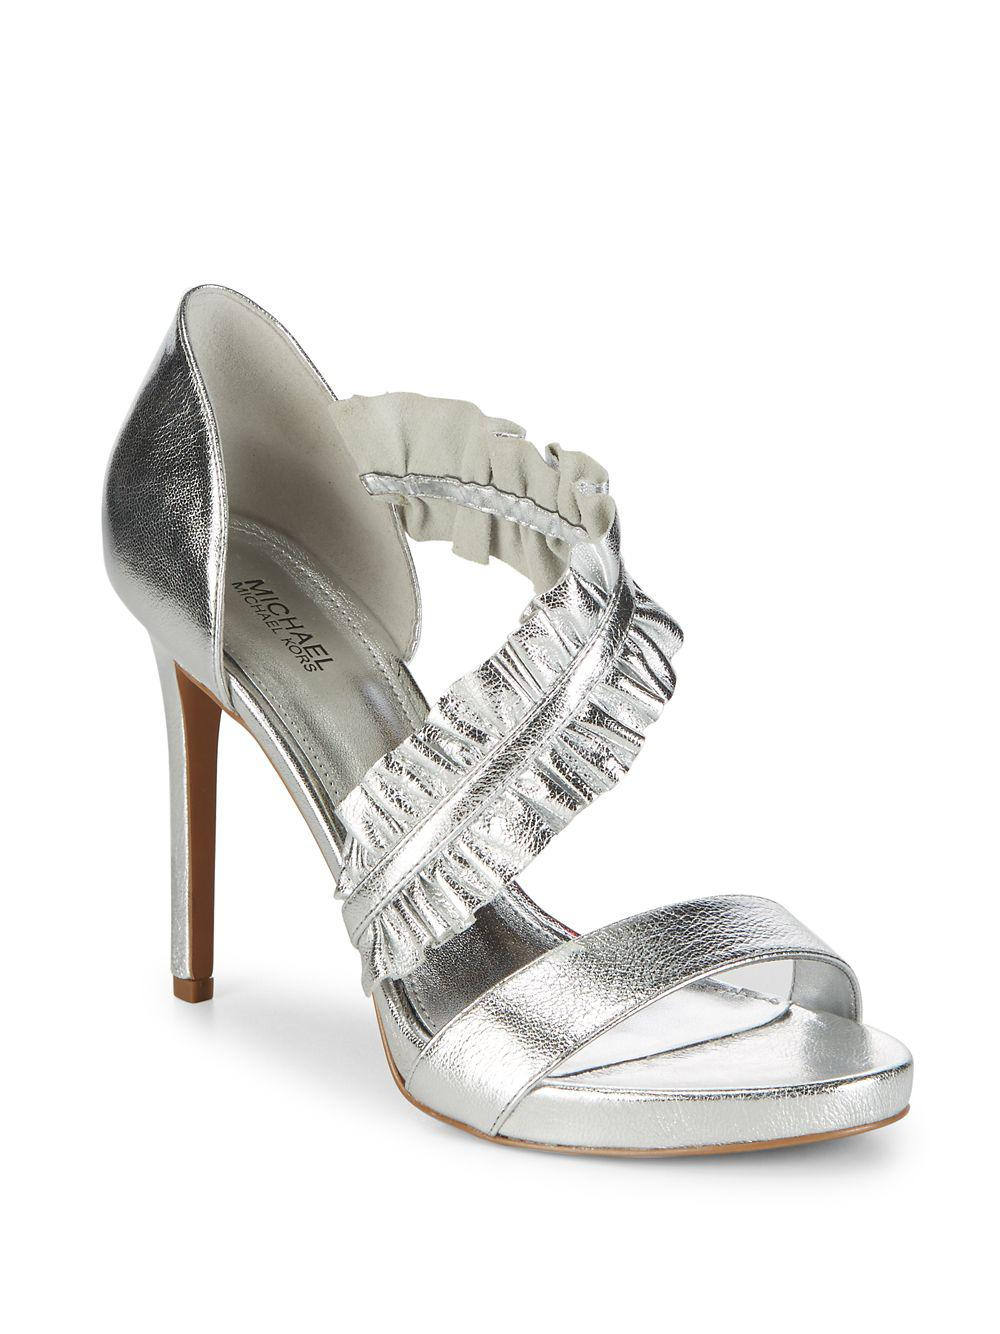 3e3a6ff2c138e Michael Michael Kors Bella Ruffle Metallic Leather Sandals in ...